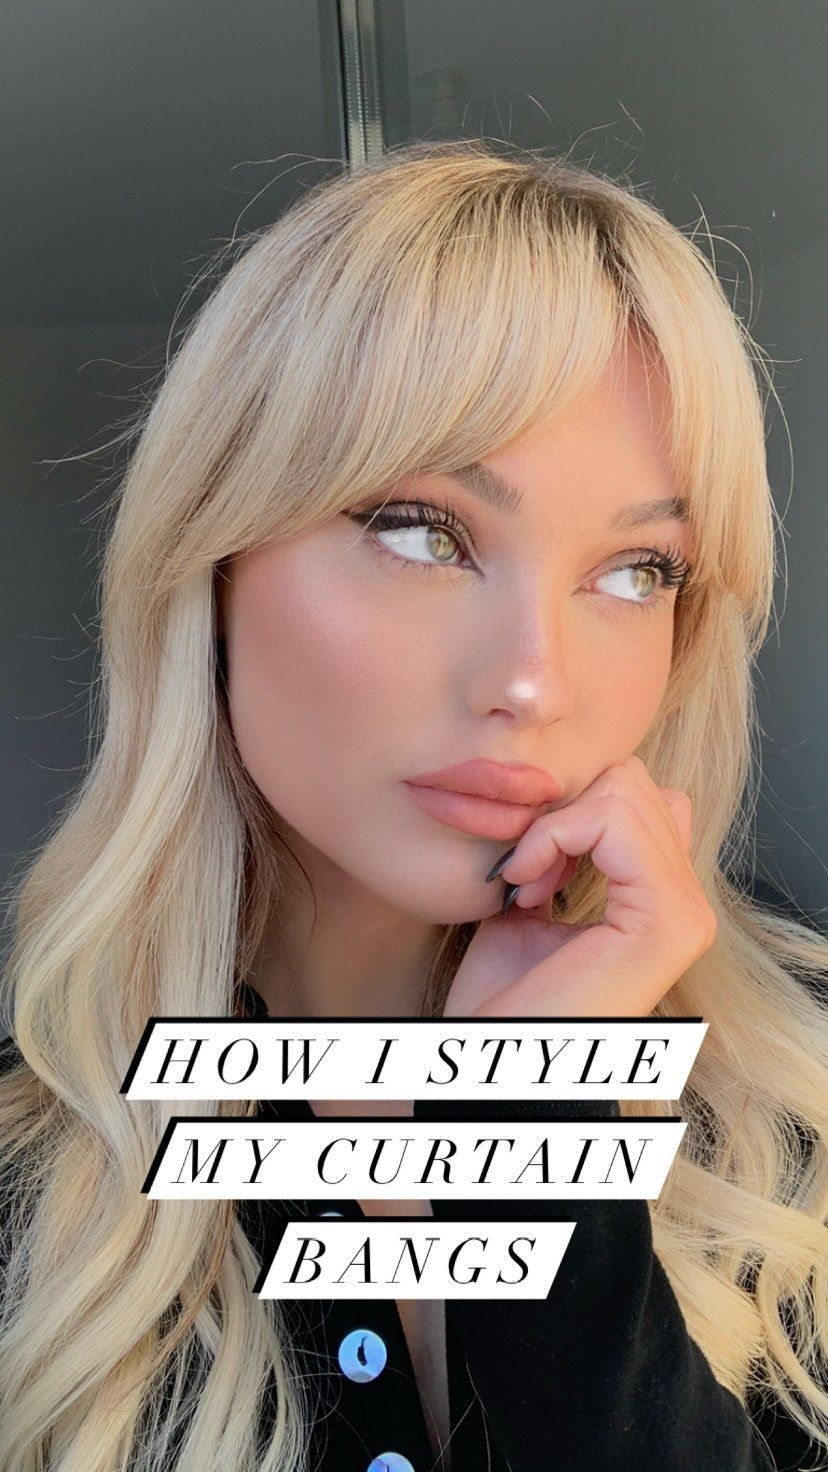 Romaneinnc On Instagram How I Style My Curtain Bangs Sometimes I Use The Straightener Too I Also Pu In 2021 Curtain Bangs Bangs With Medium Hair Dyed Blonde Hair